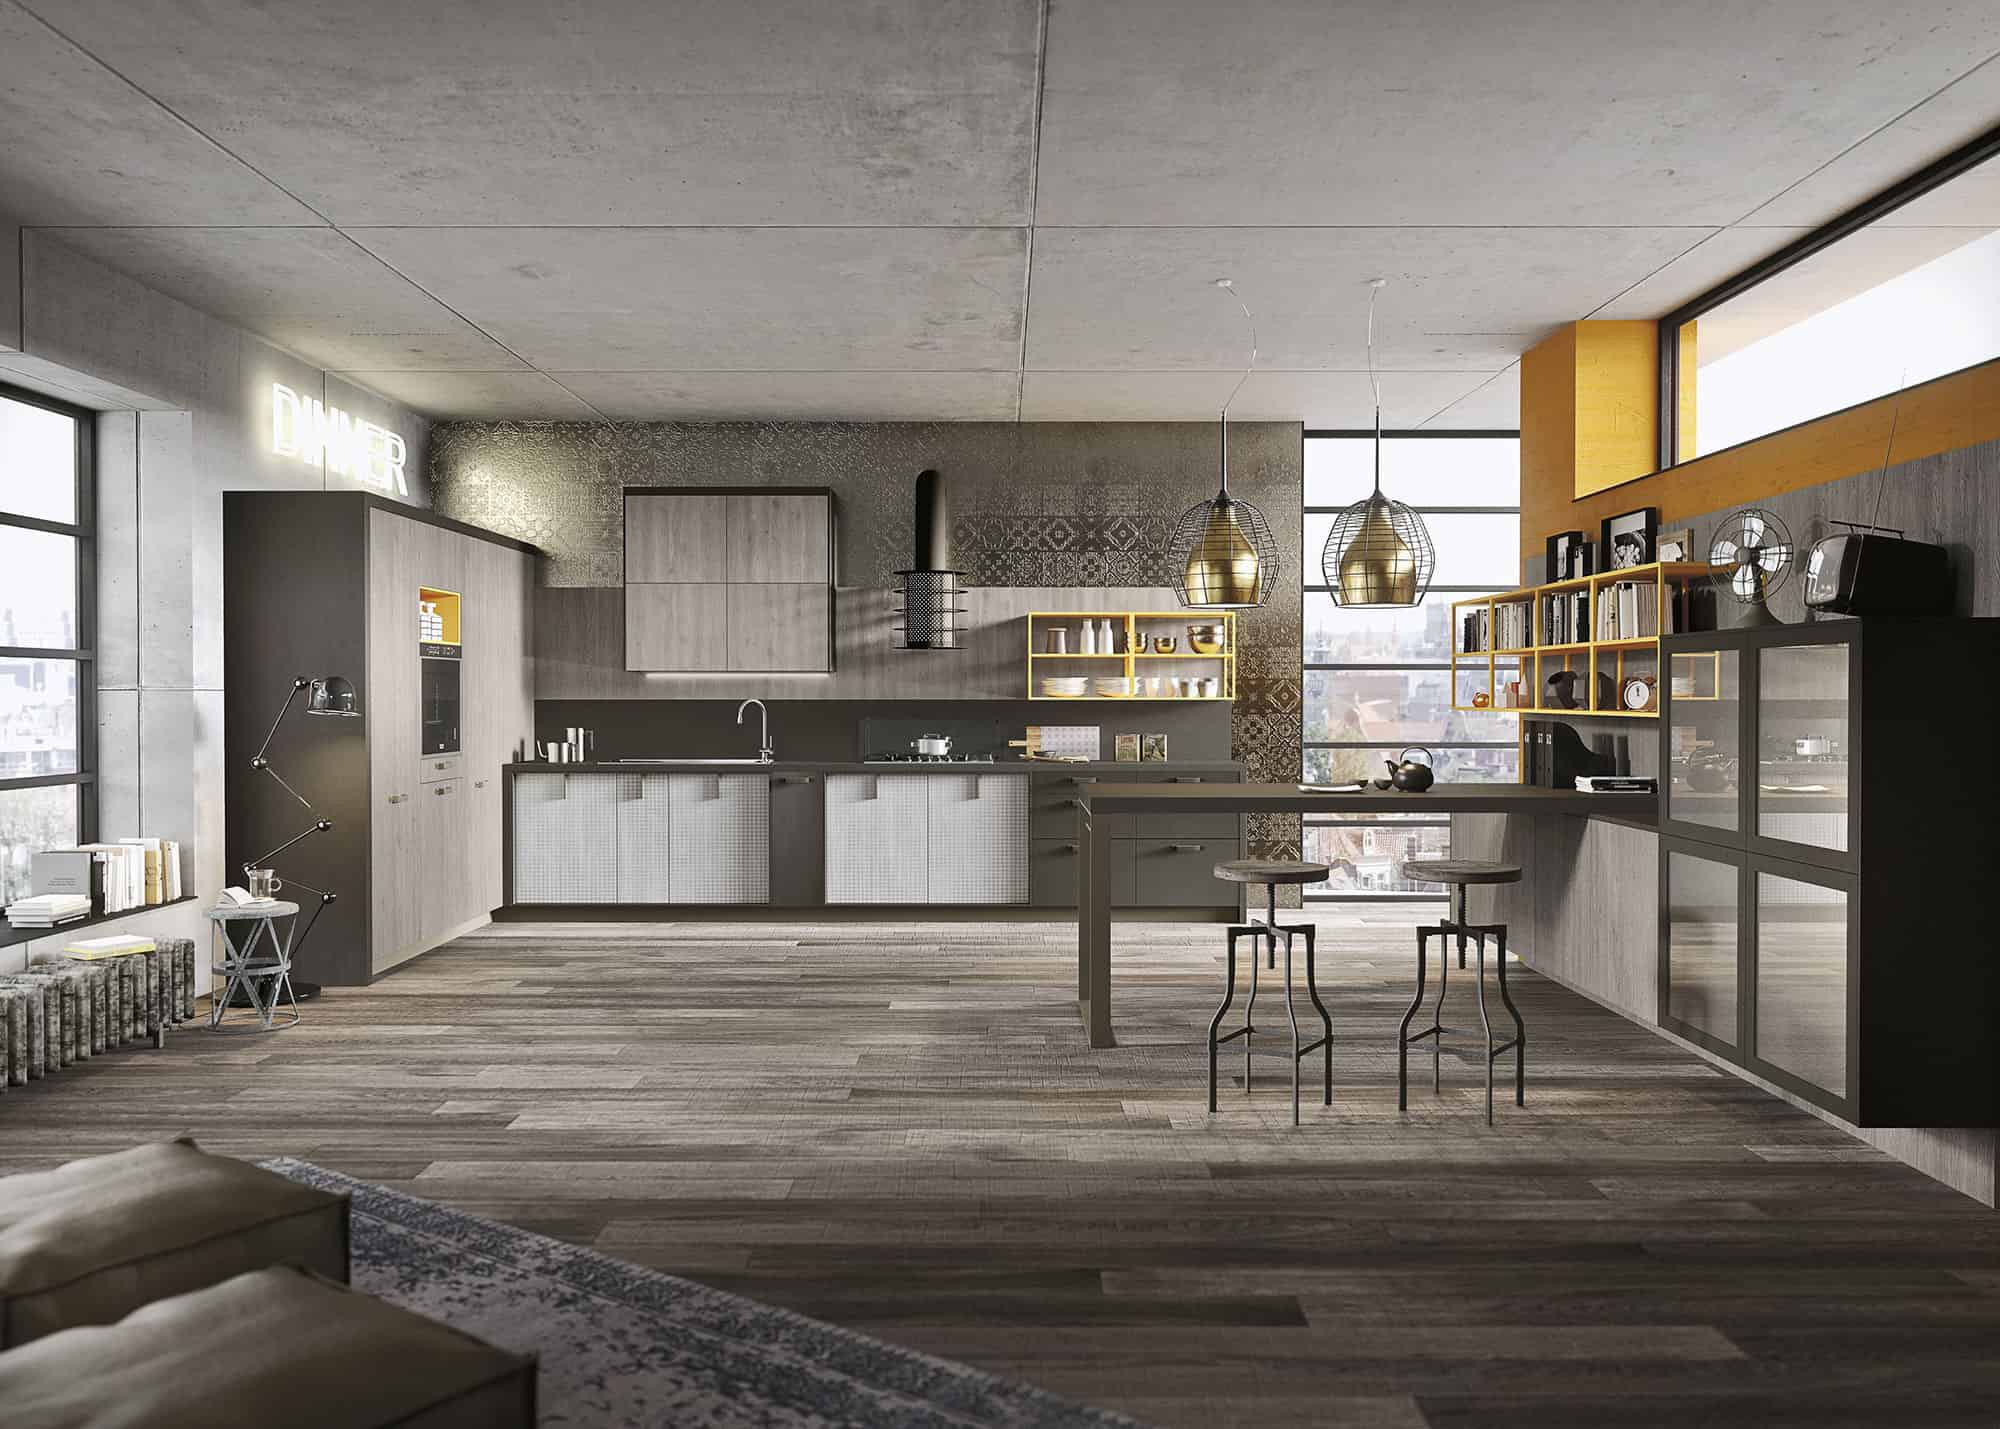 Loft Kitchen Ideas Endearing Kitchen Design For Lofts 3 Urban Ideas From Snaidero